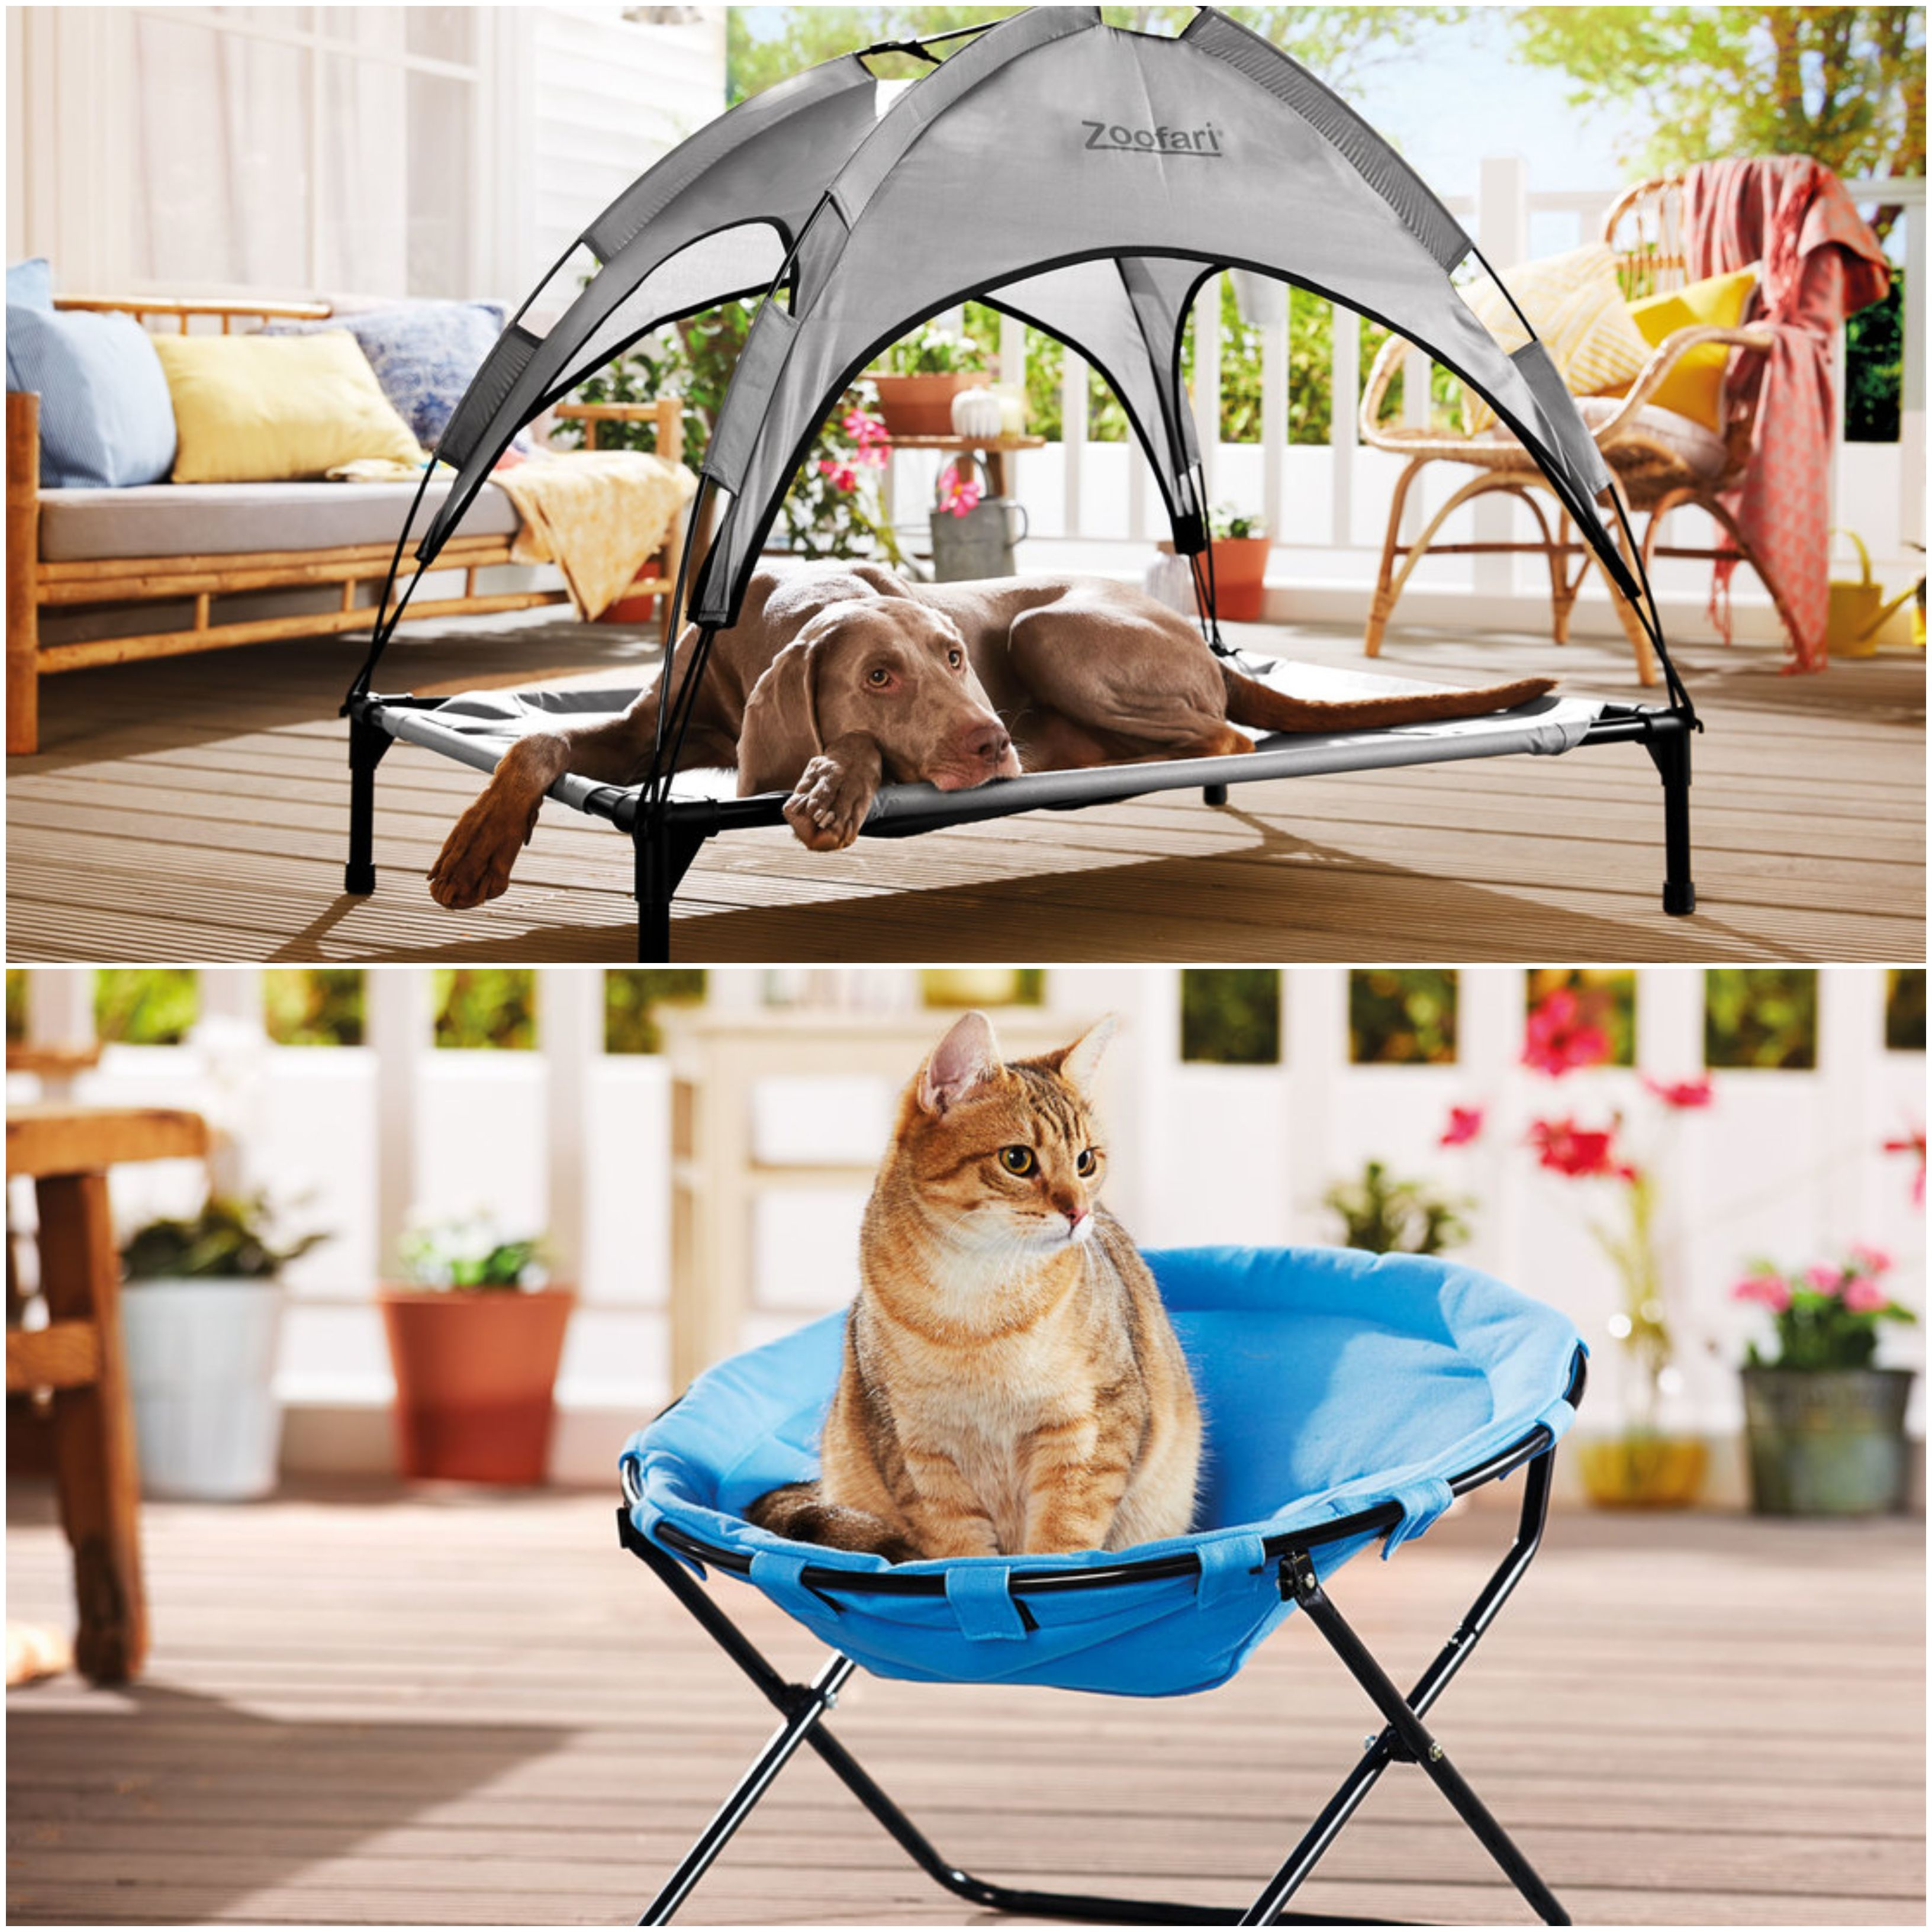 Lidl's dog bed with sun shade, cat chair and pets teepee are must-have summer buys